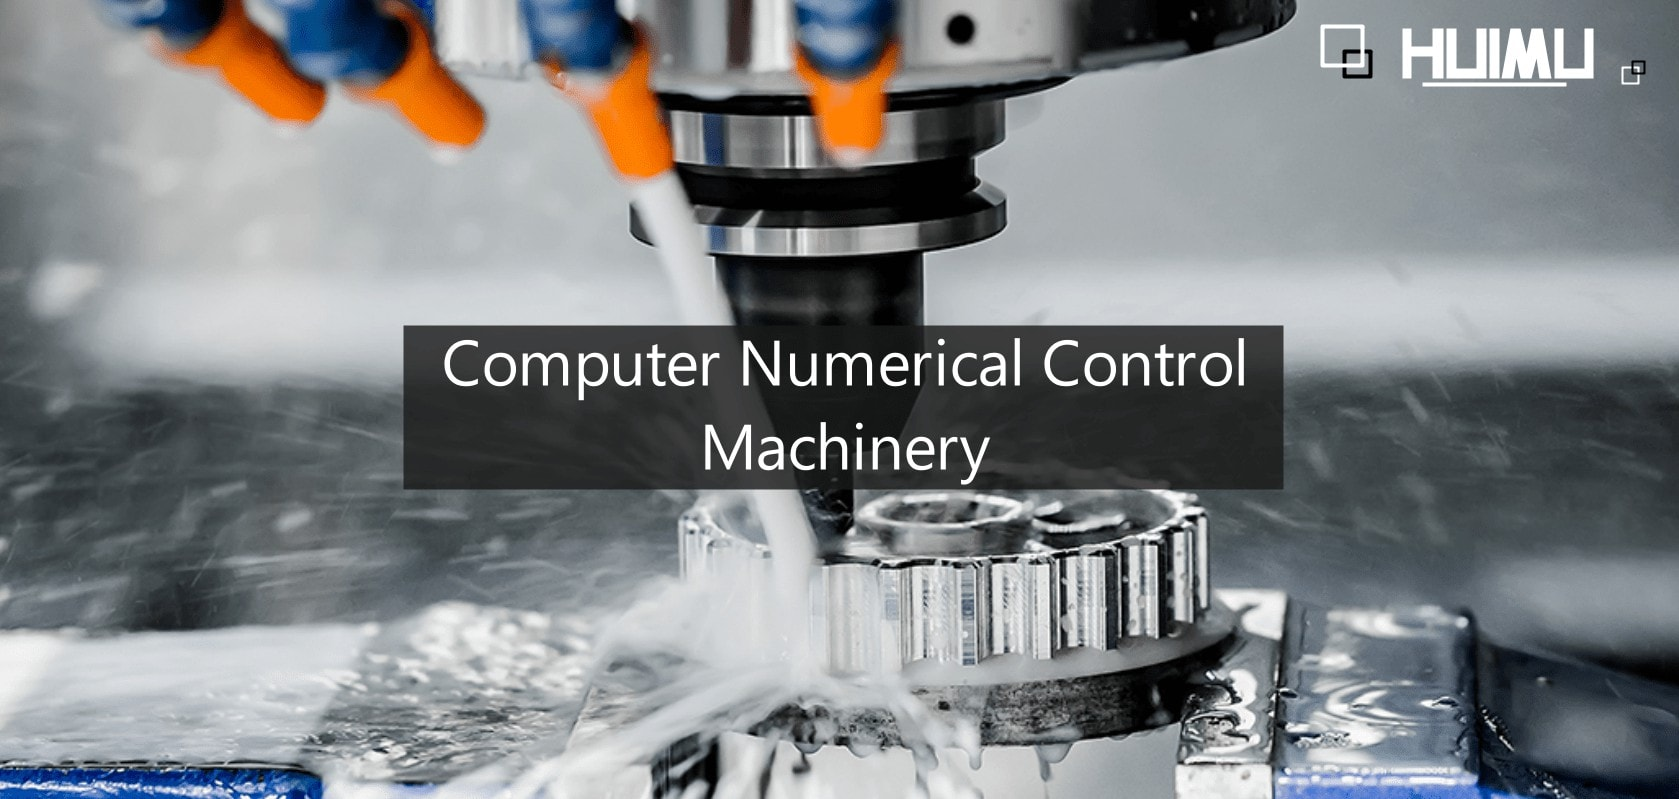 Computer Numerical Control Machinery